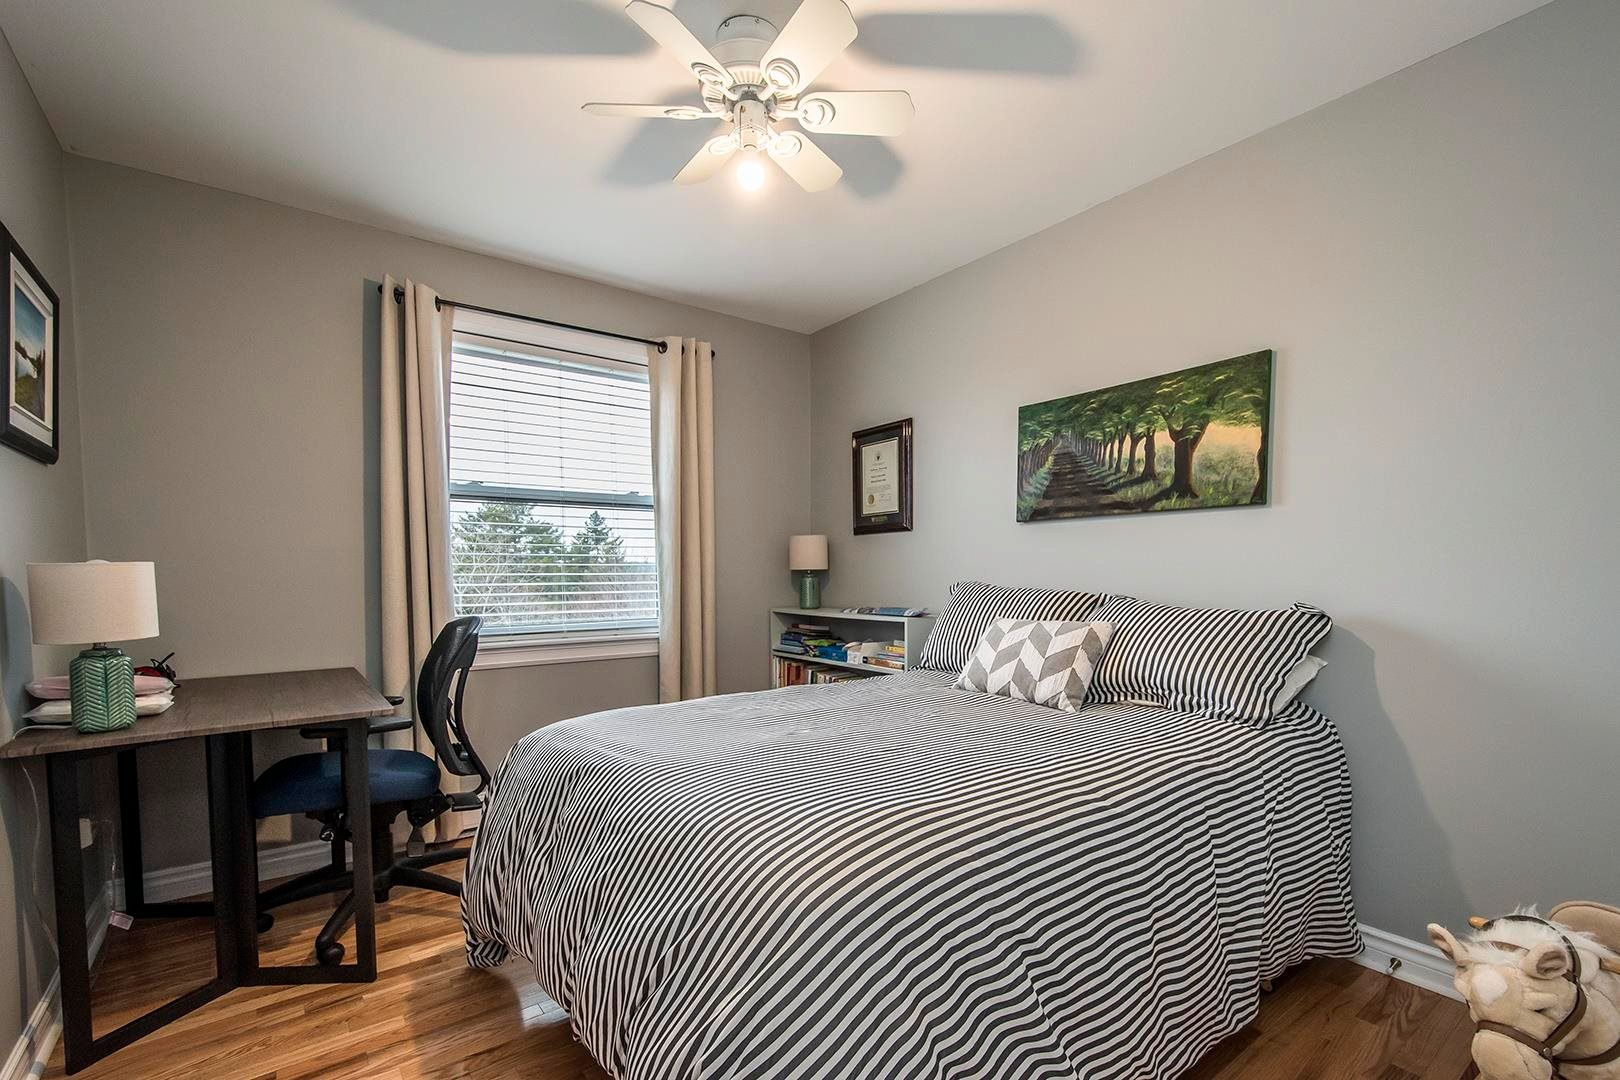 Photo 20: Photos: 64 Roy Crescent in Bedford: 20-Bedford Residential for sale (Halifax-Dartmouth)  : MLS®# 202110846